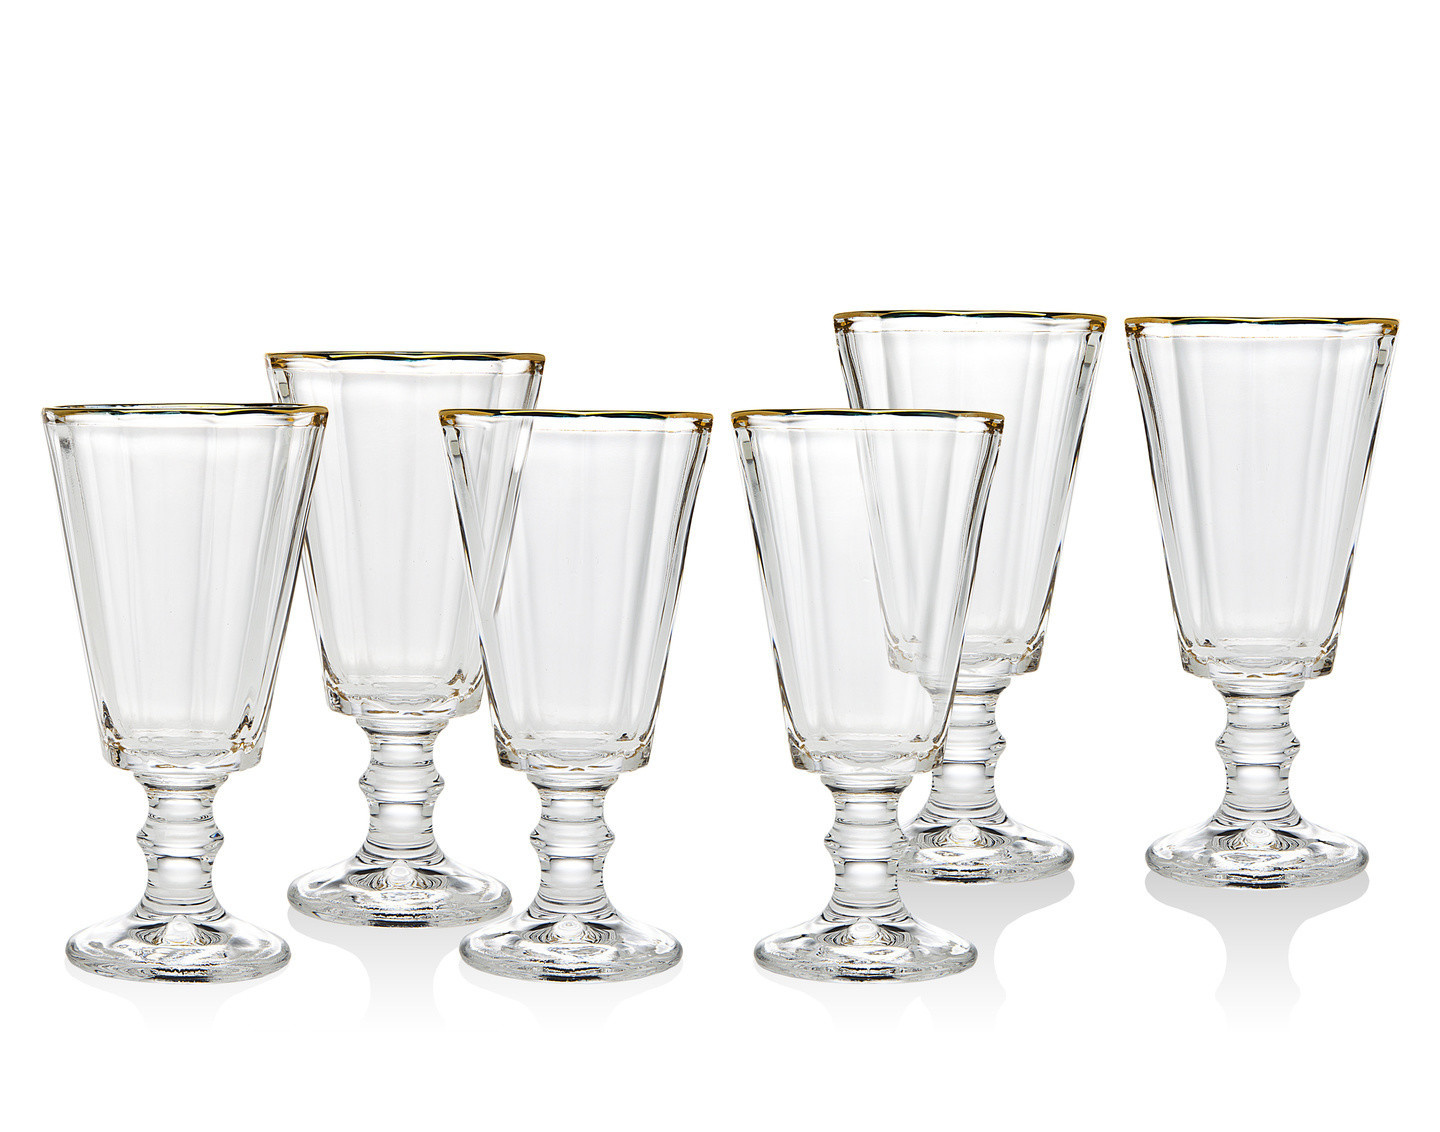 Grandeur Gold shot glasses s/6